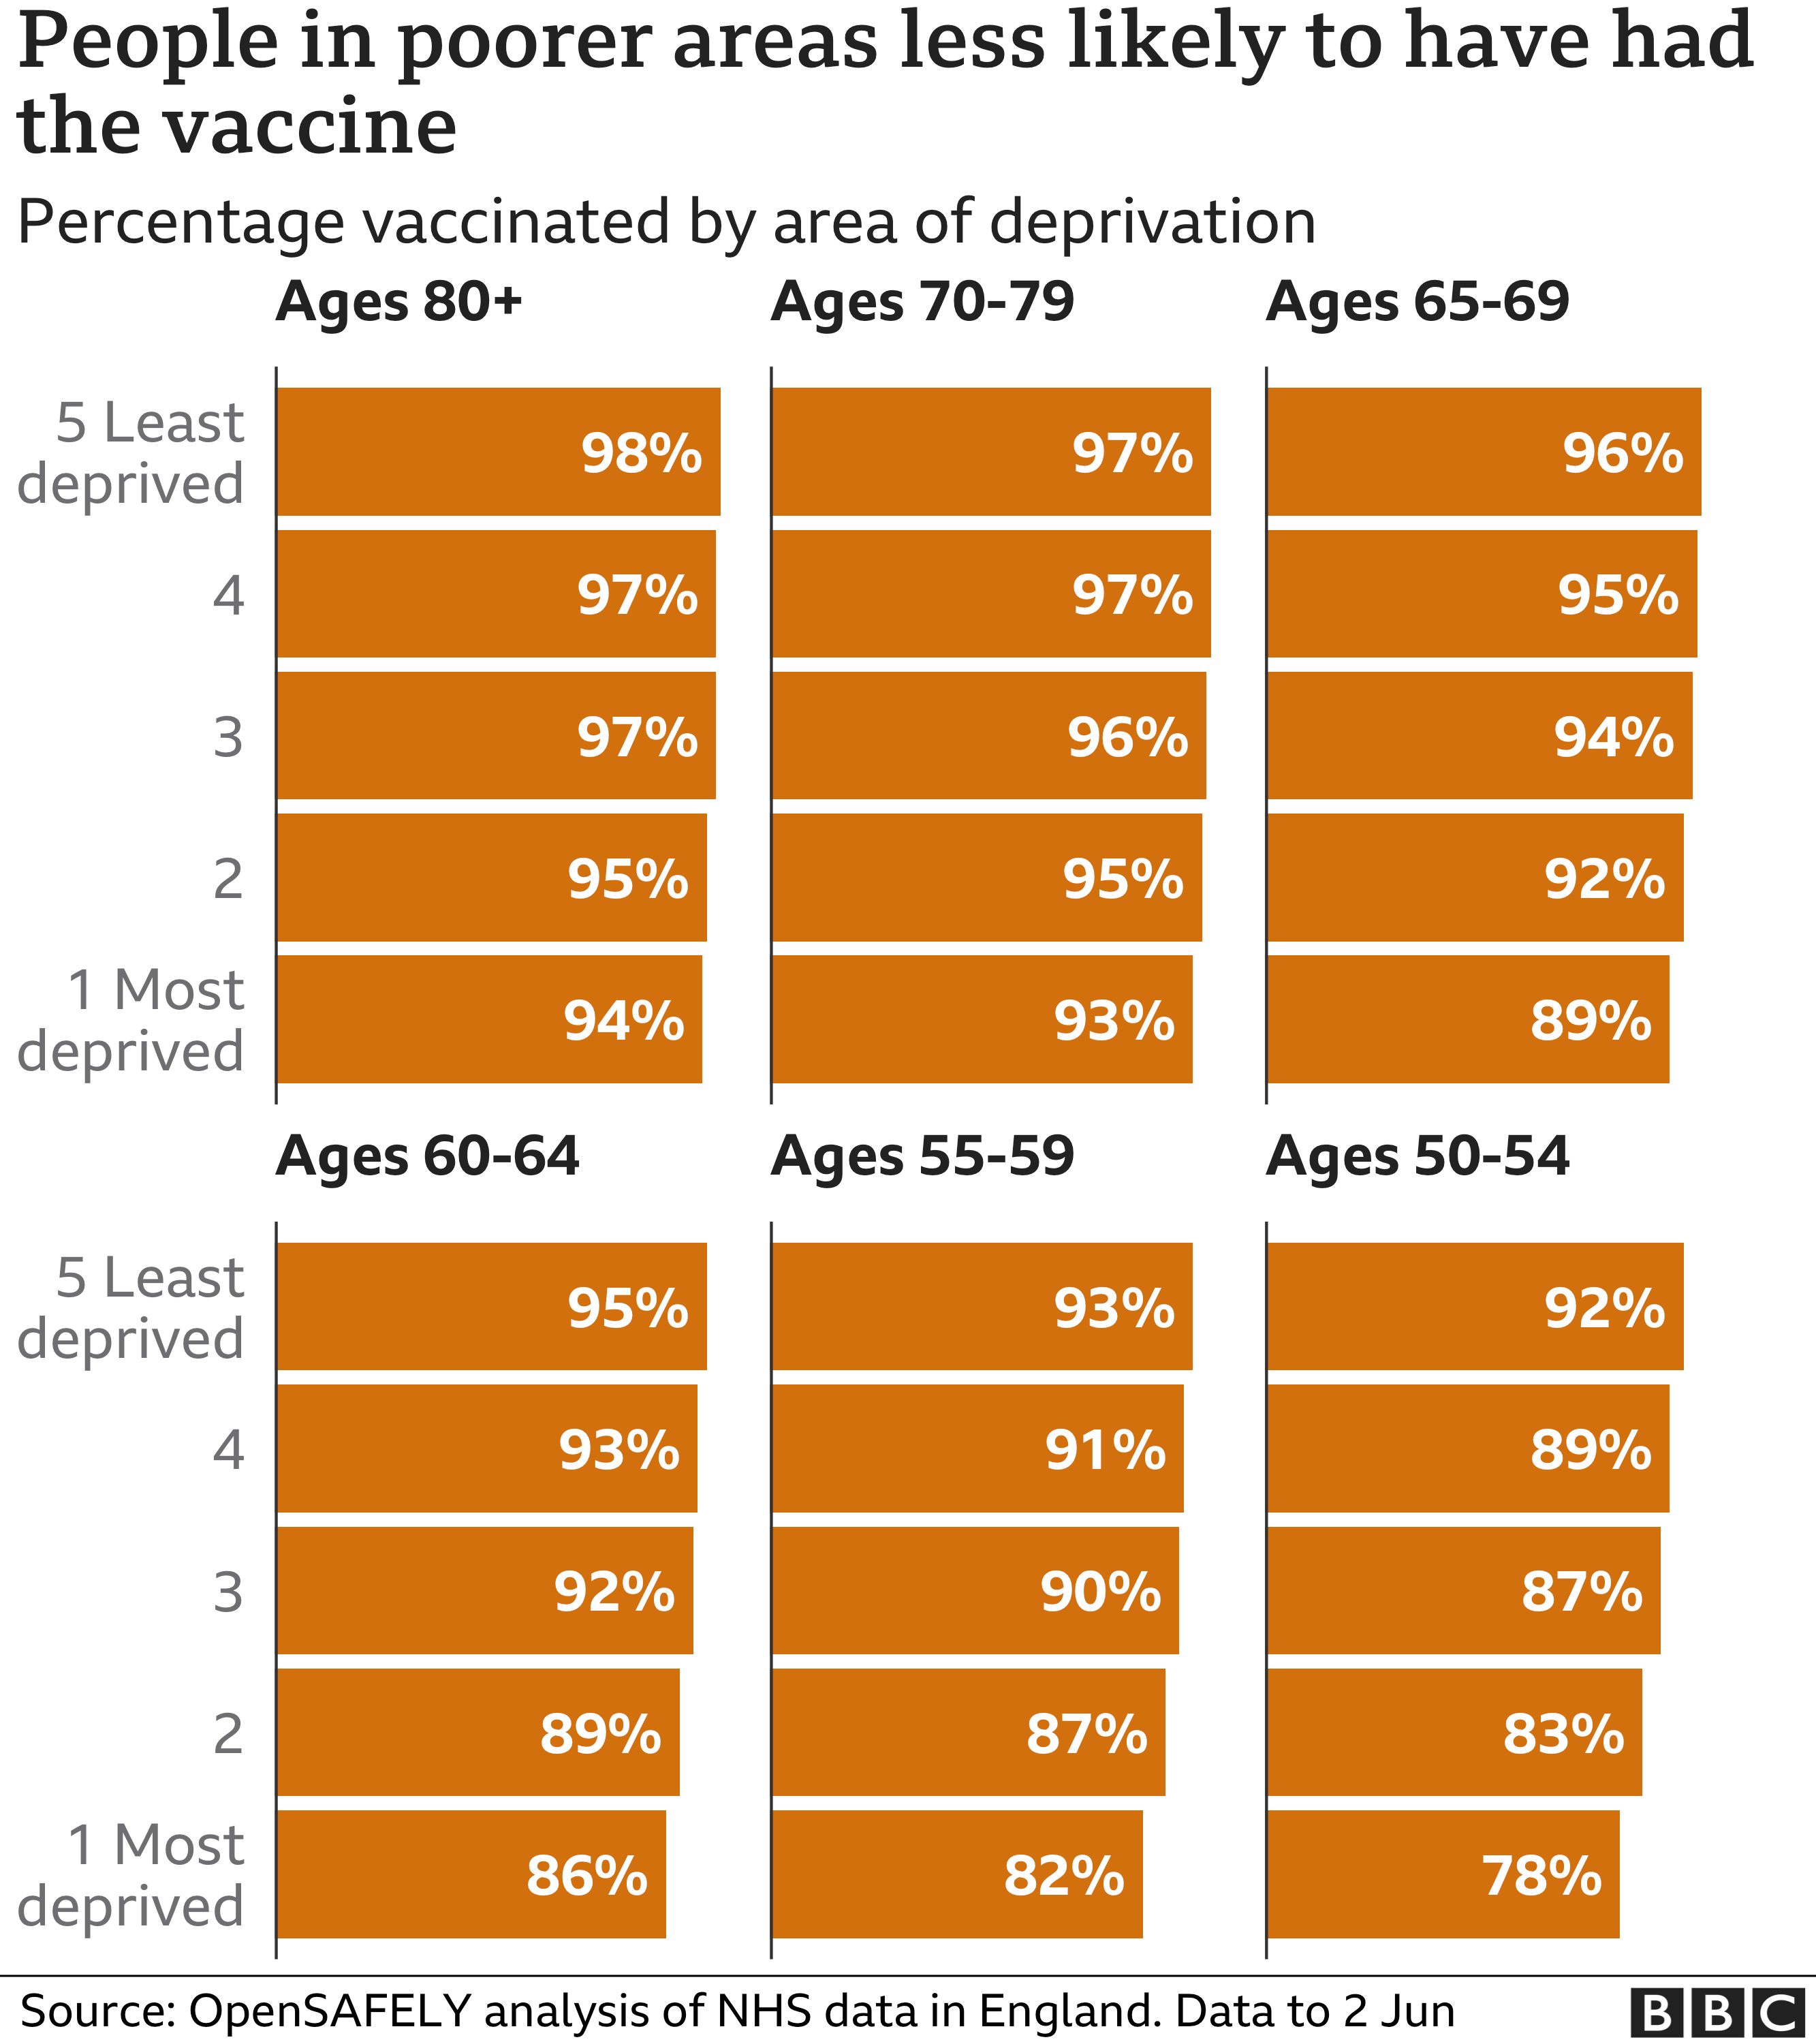 Chart showing people in poorer areas are less likely to have had a vaccine. Updated 10 June.